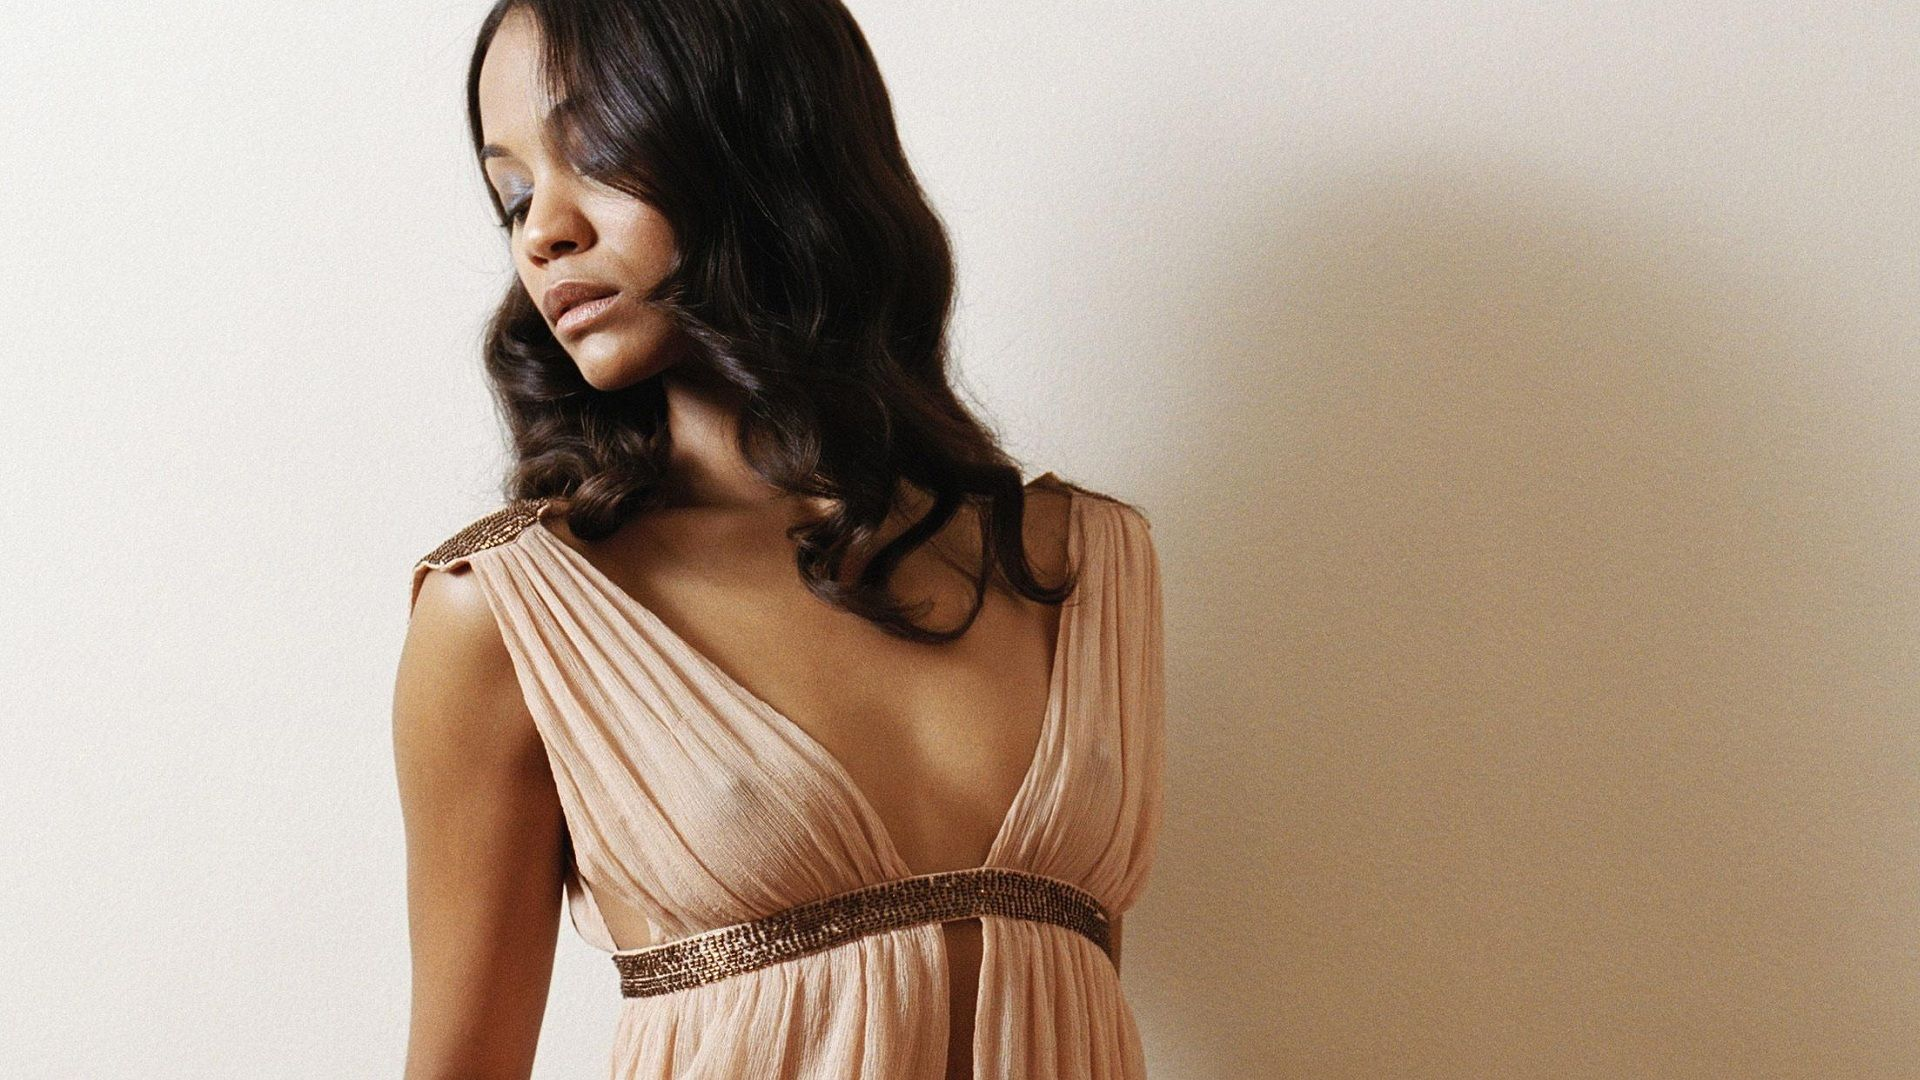 Cleavage Zoe Saldana nudes (52 photos), Tits, Hot, Selfie, cleavage 2020